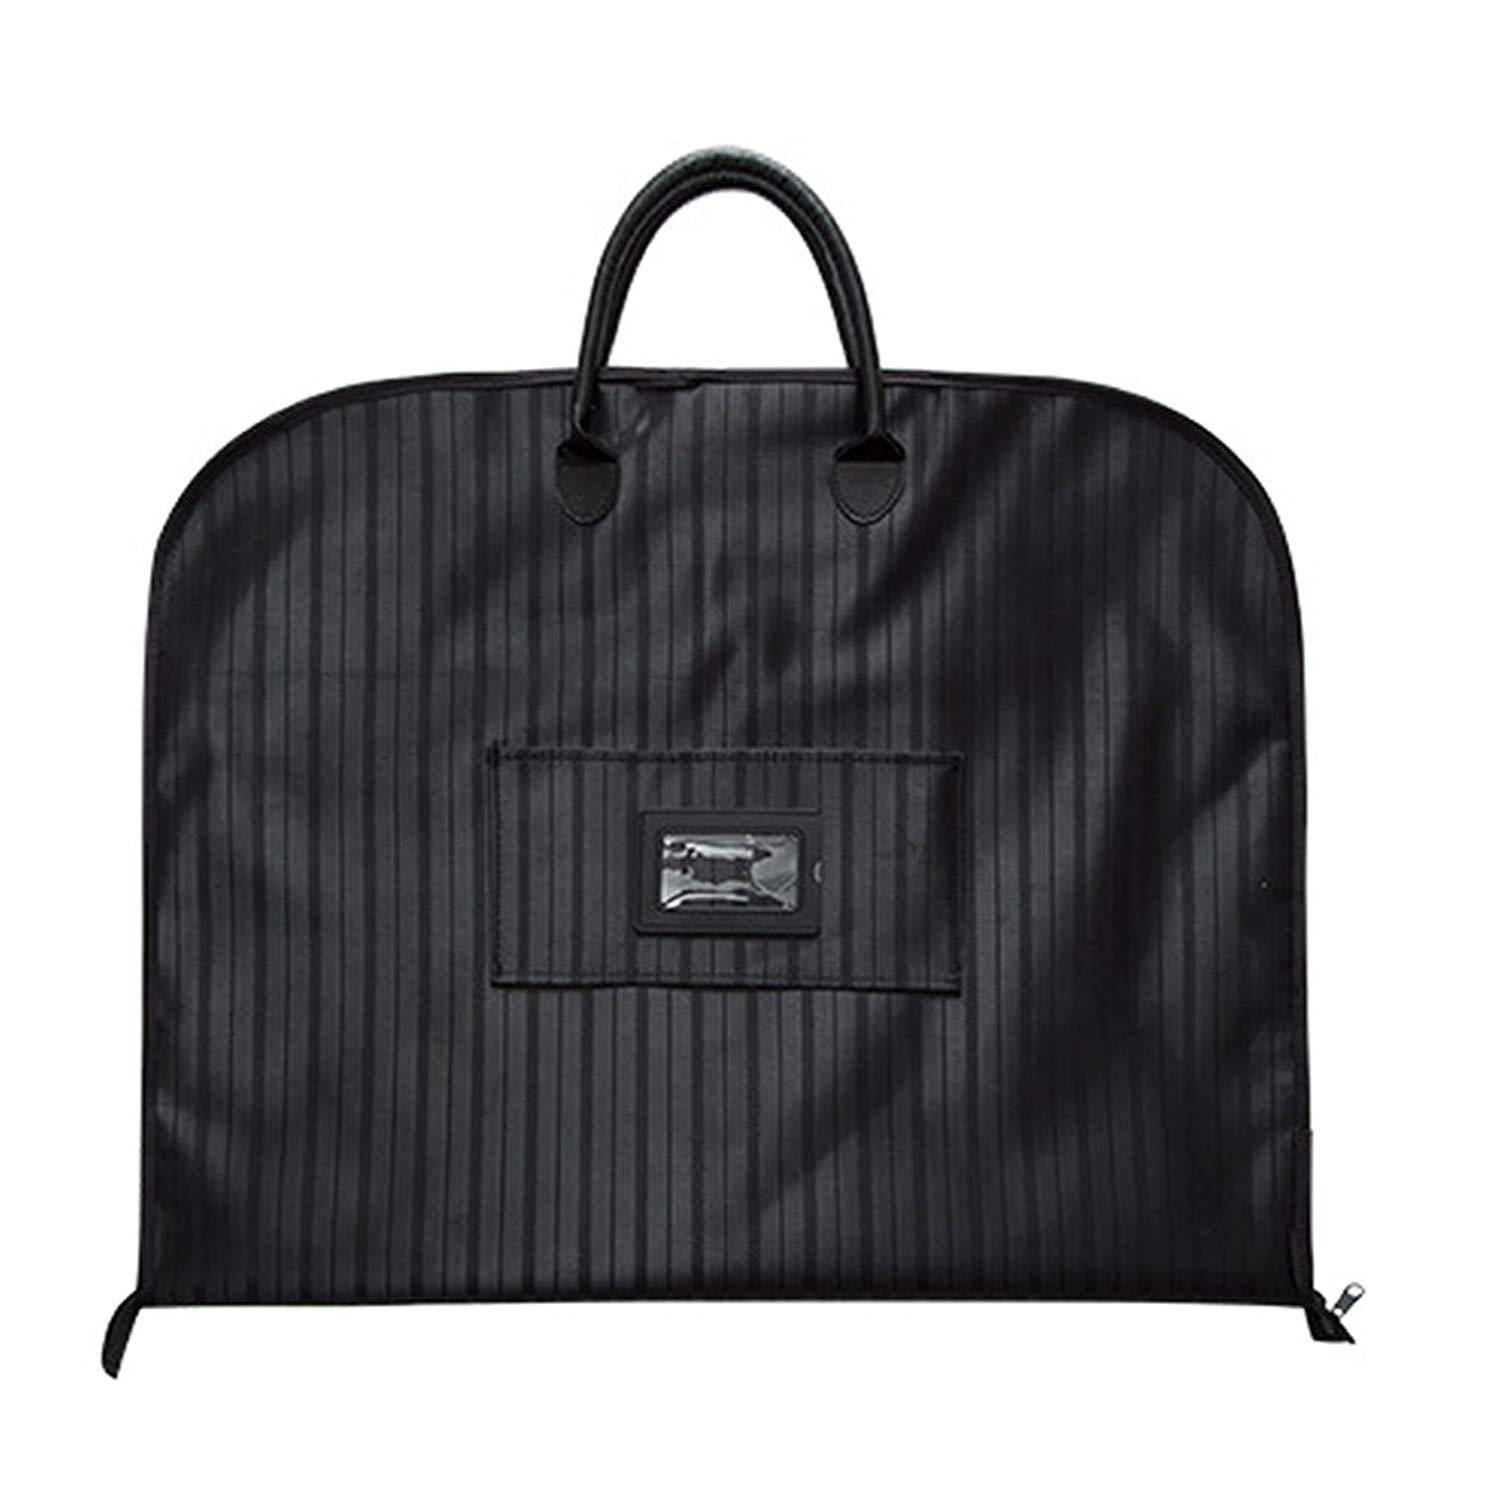 Black MYBESTFURN Light Weight Travel Garment Bag Waterproof Carry On Suit Bag 40 Inches